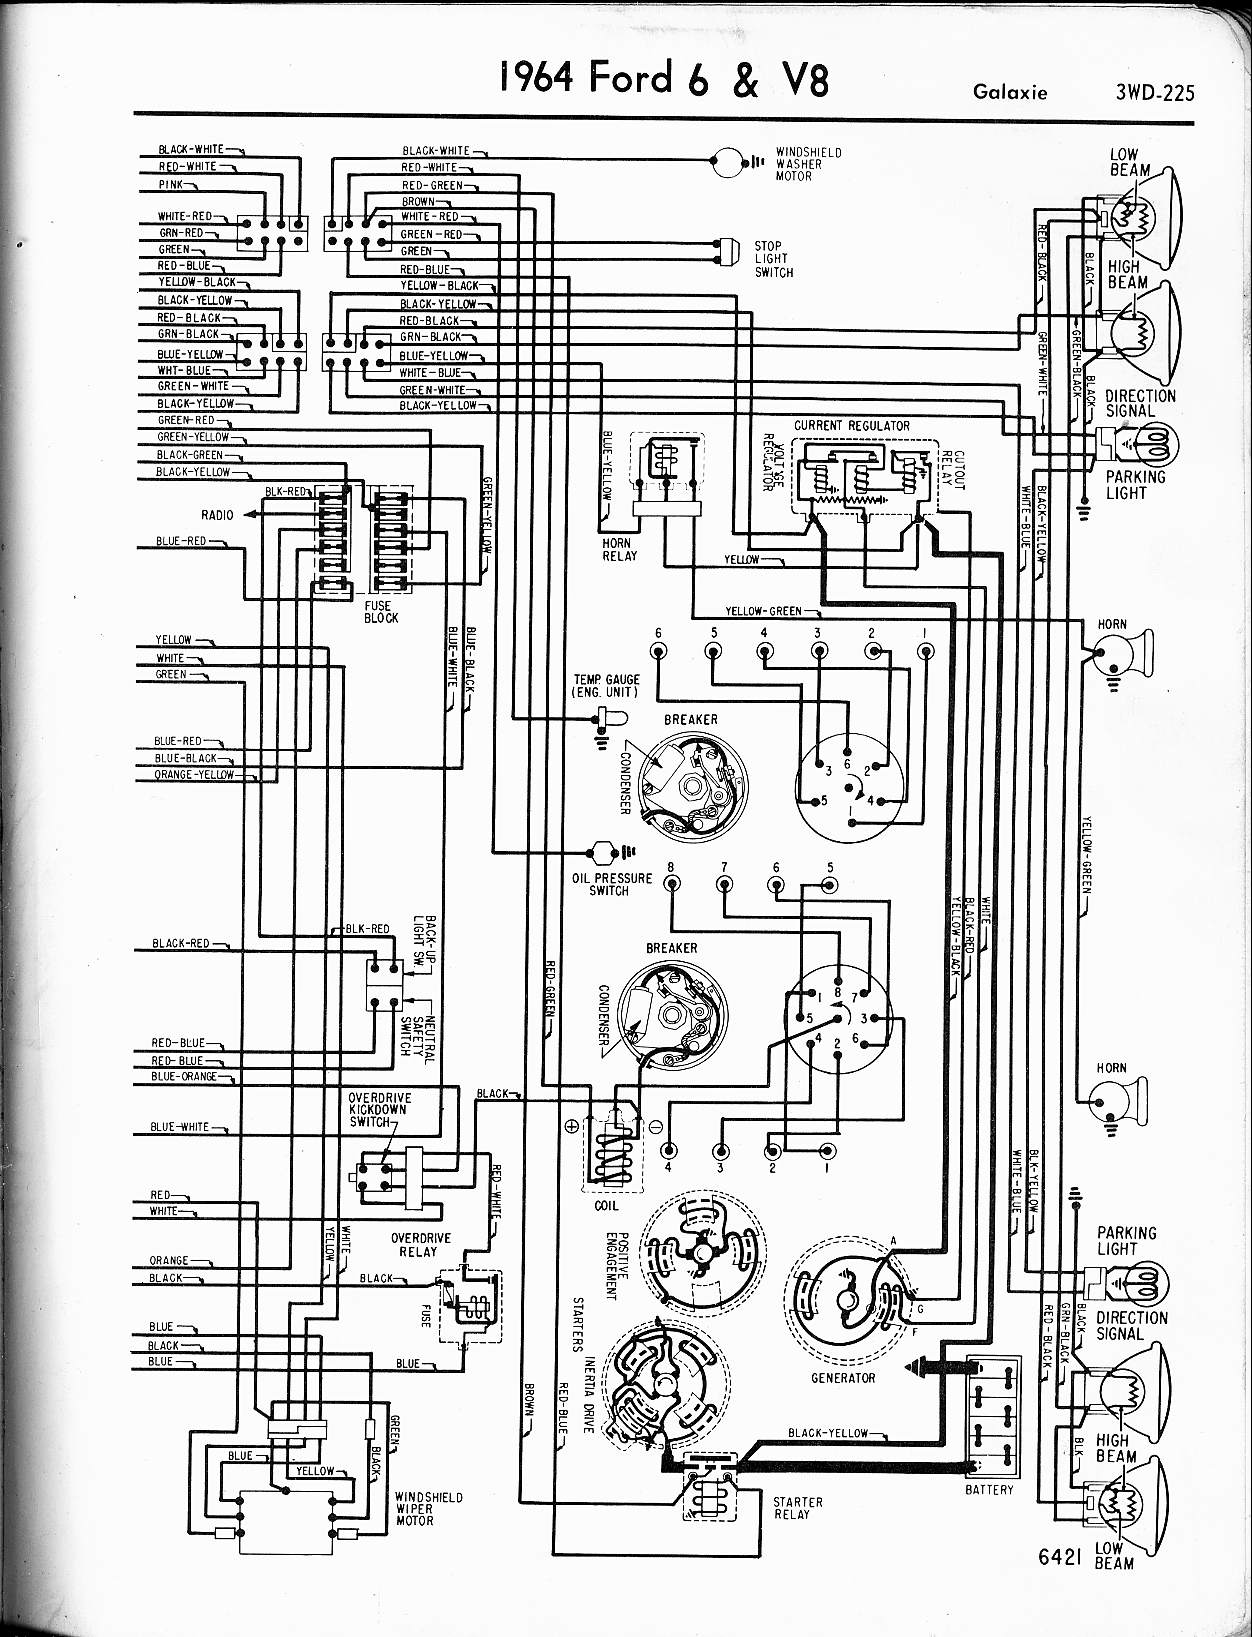 MWire5765 225 57 65 ford wiring diagrams Ford E 350 Wiring Diagrams at crackthecode.co